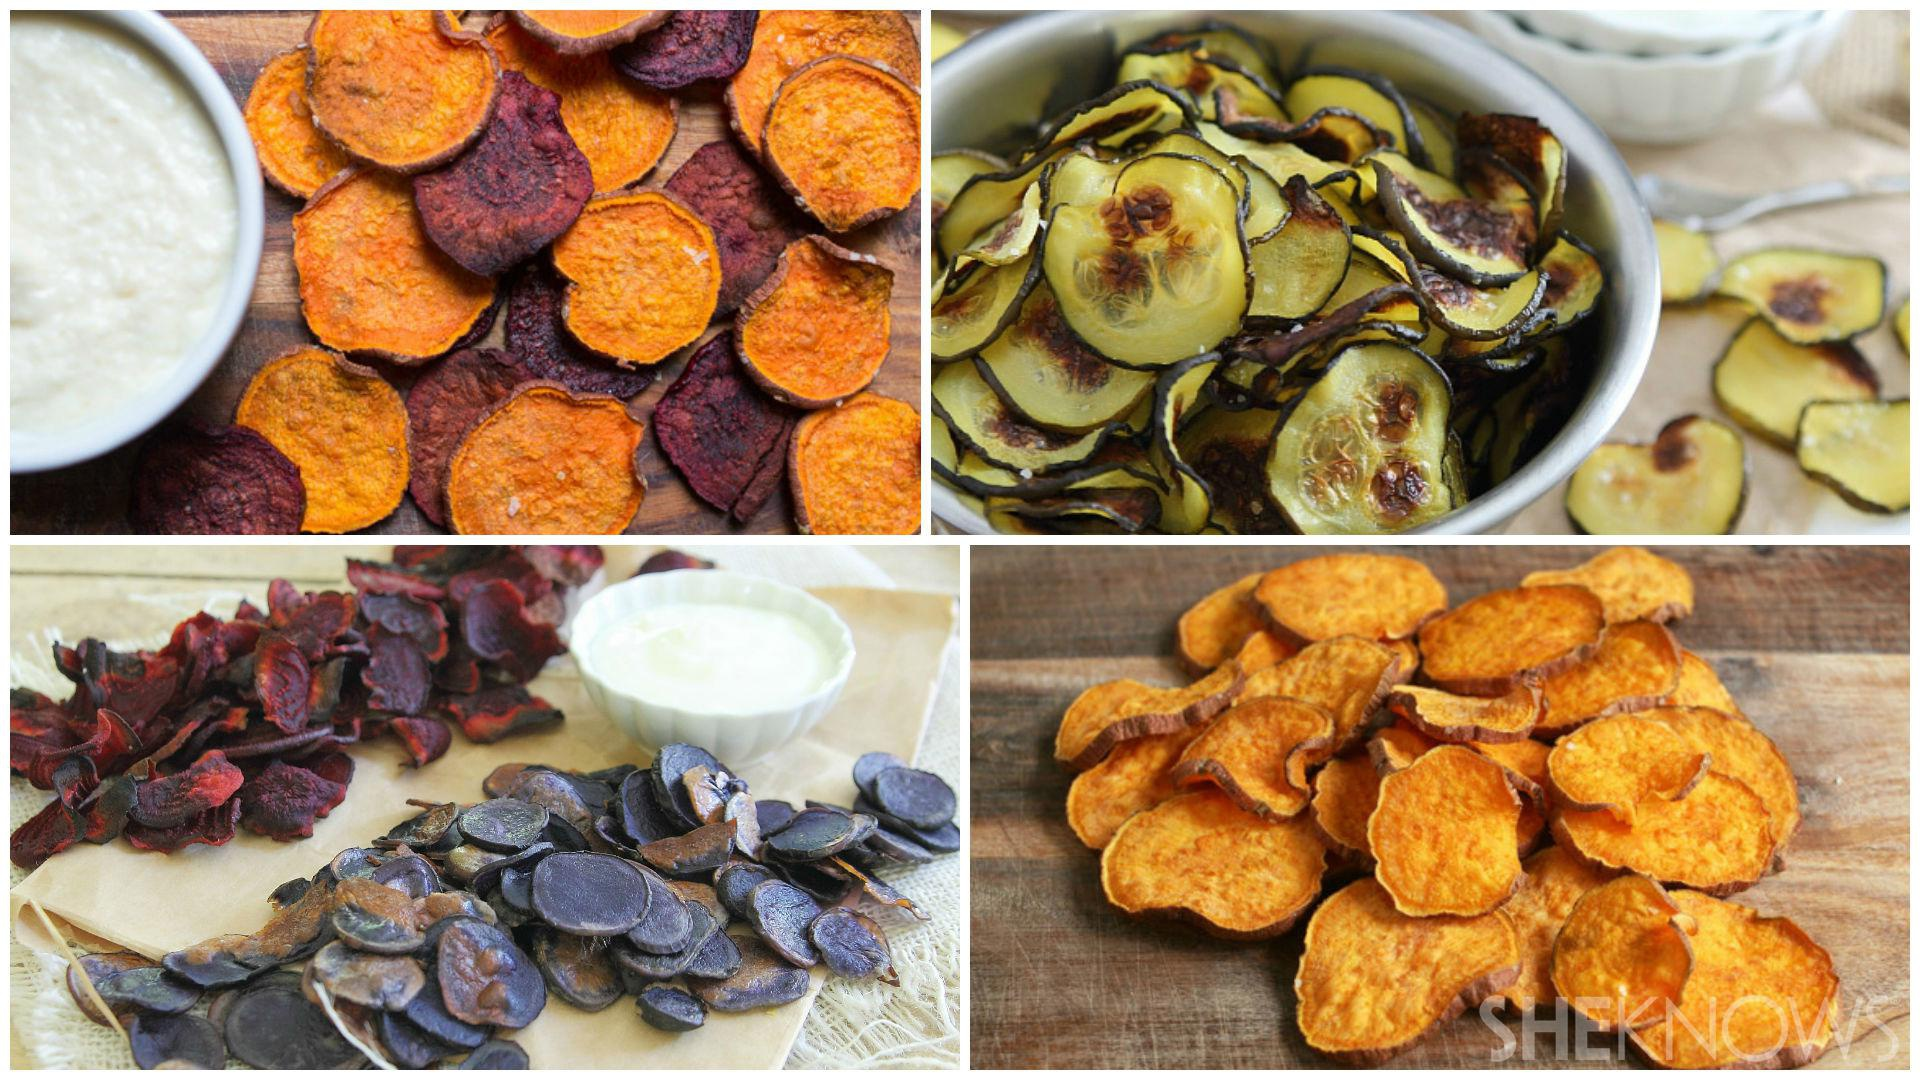 Homemade chips you won't feel bad about eating